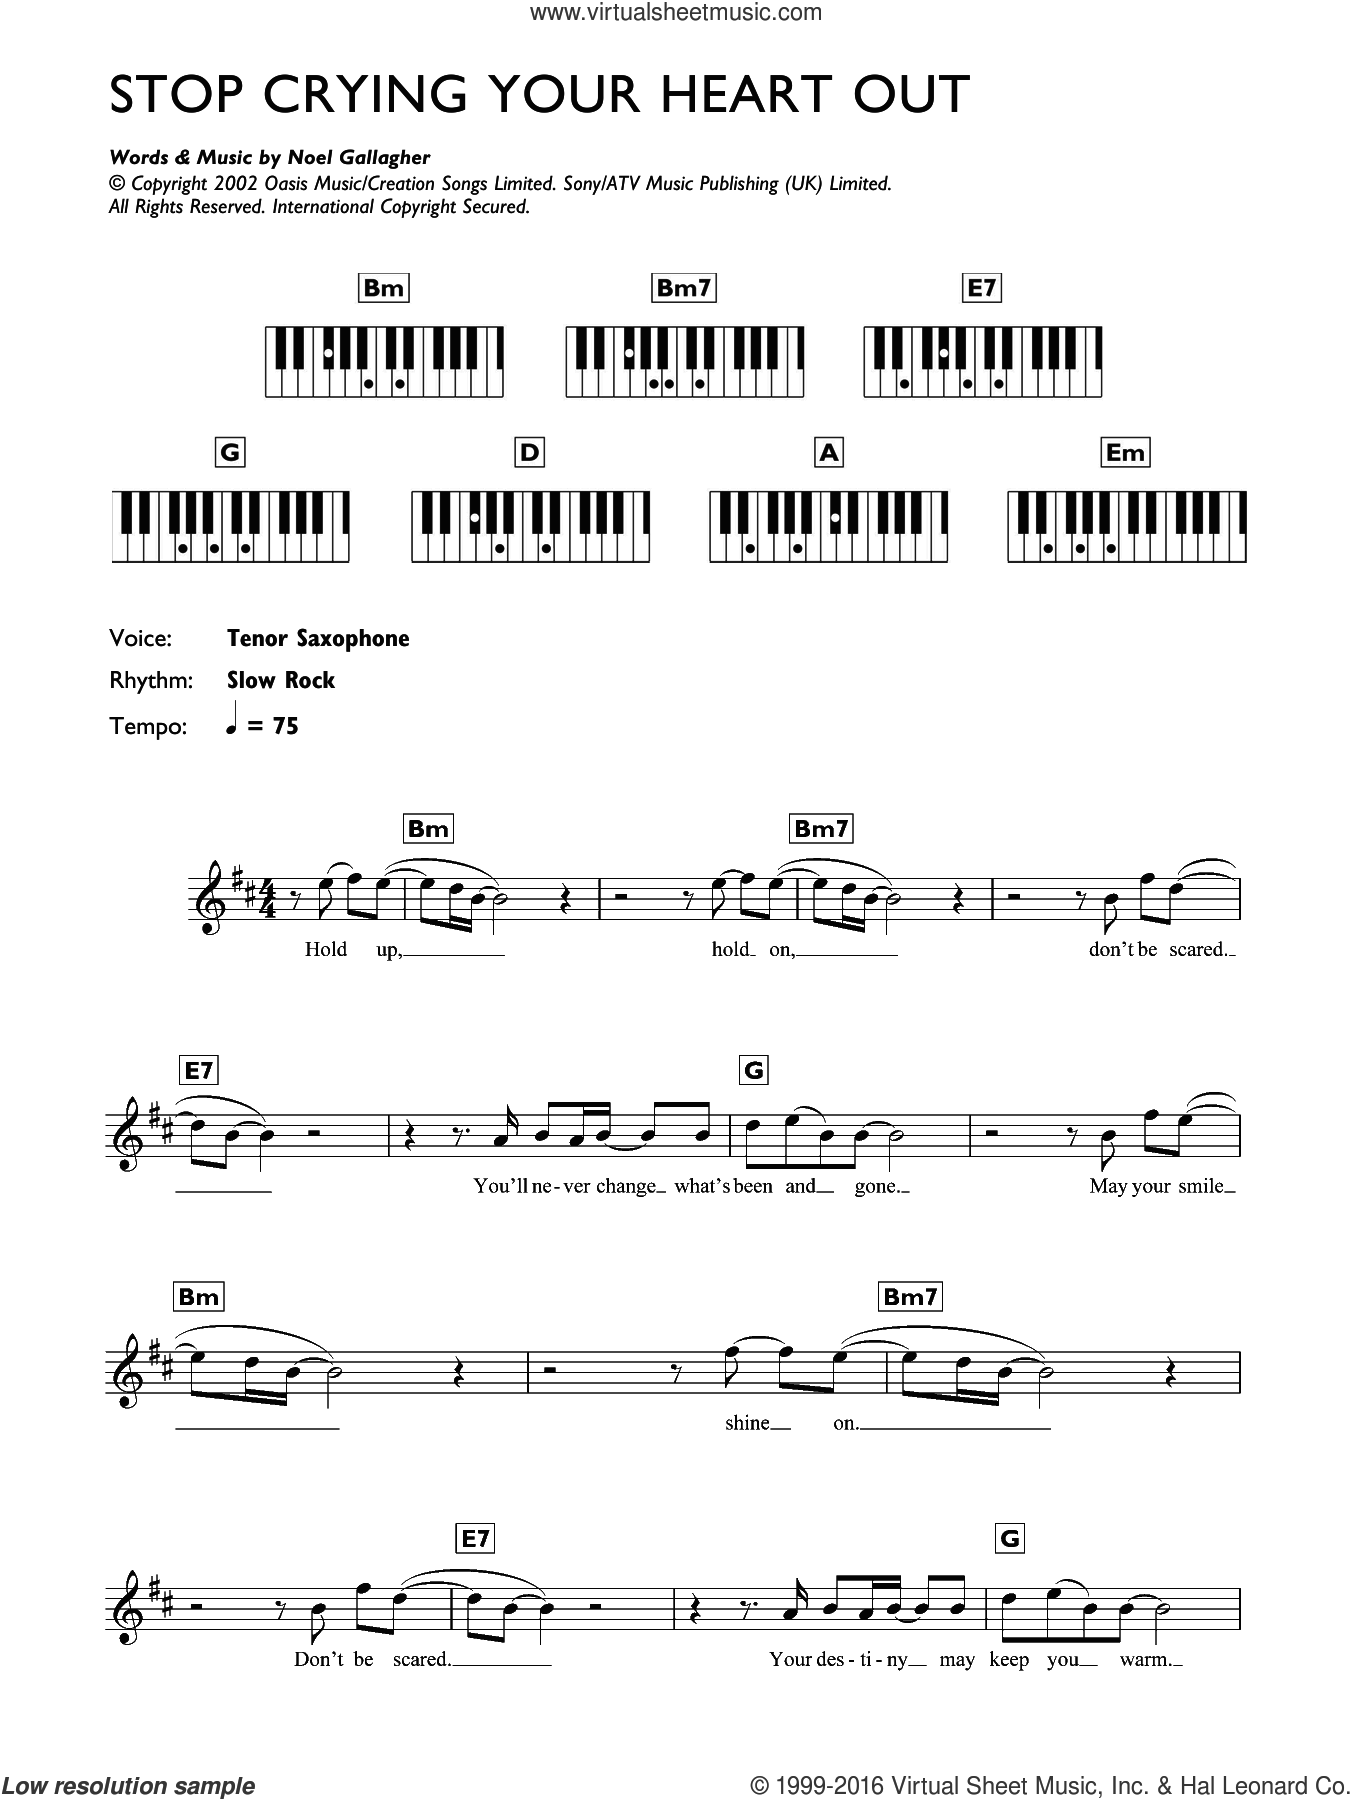 Stop Crying Your Heart Out sheet music for piano solo (chords, lyrics, melody) by Oasis and Noel Gallagher. Score Image Preview.